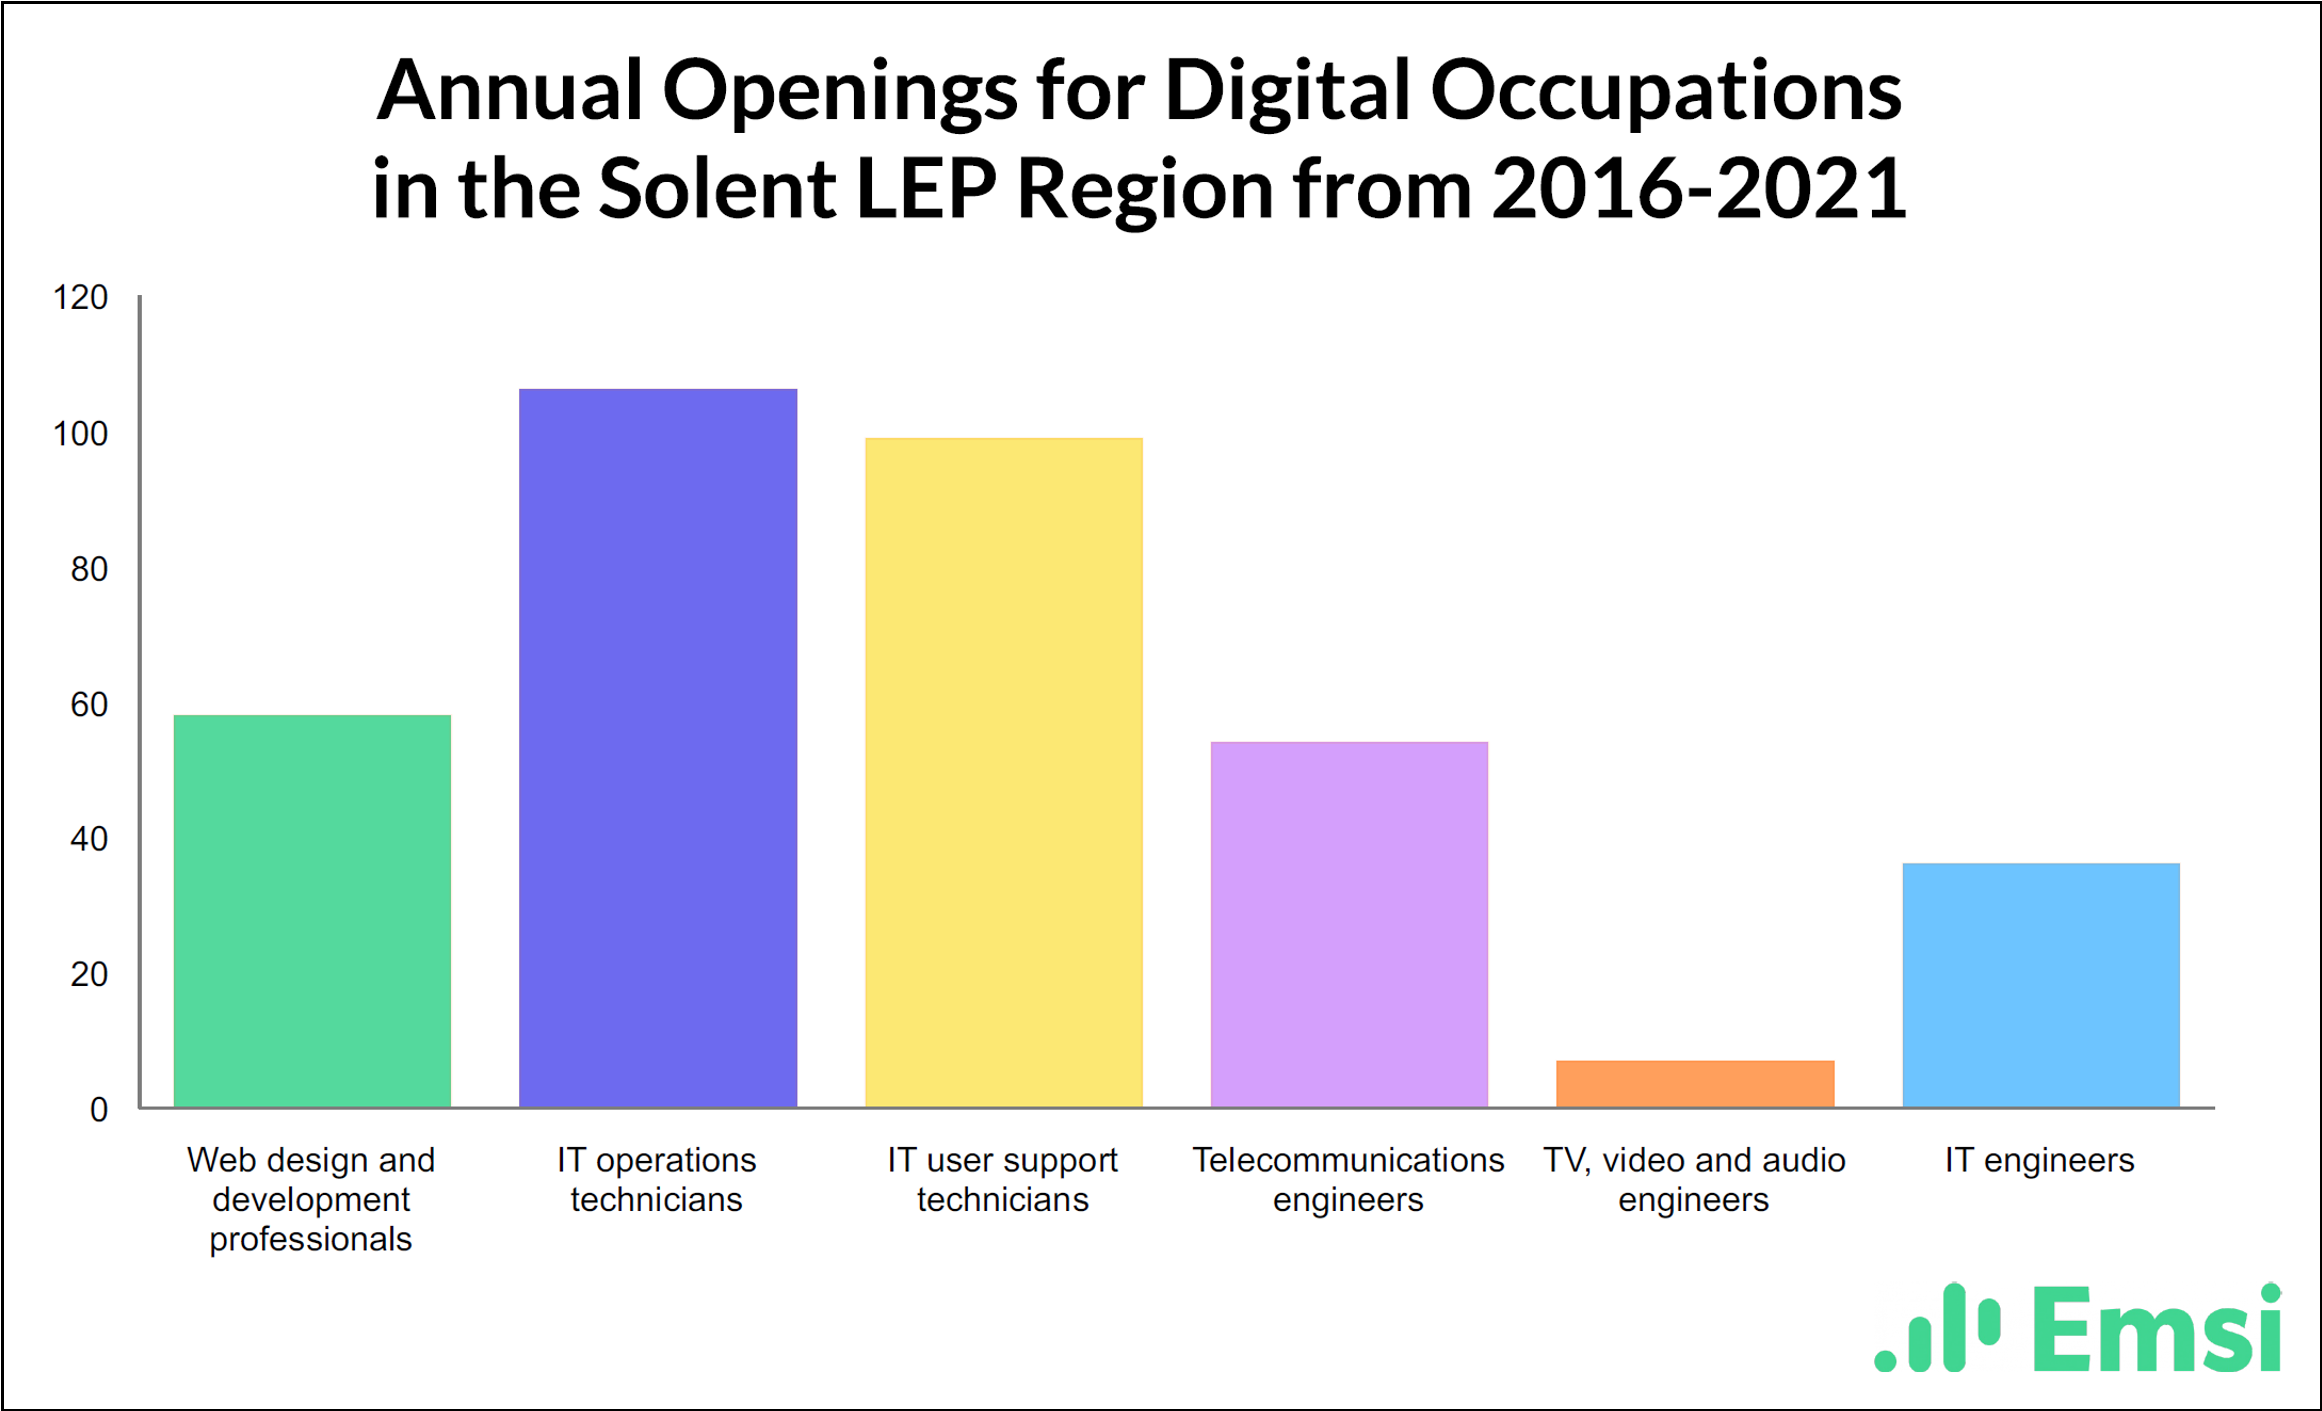 Digital occupations